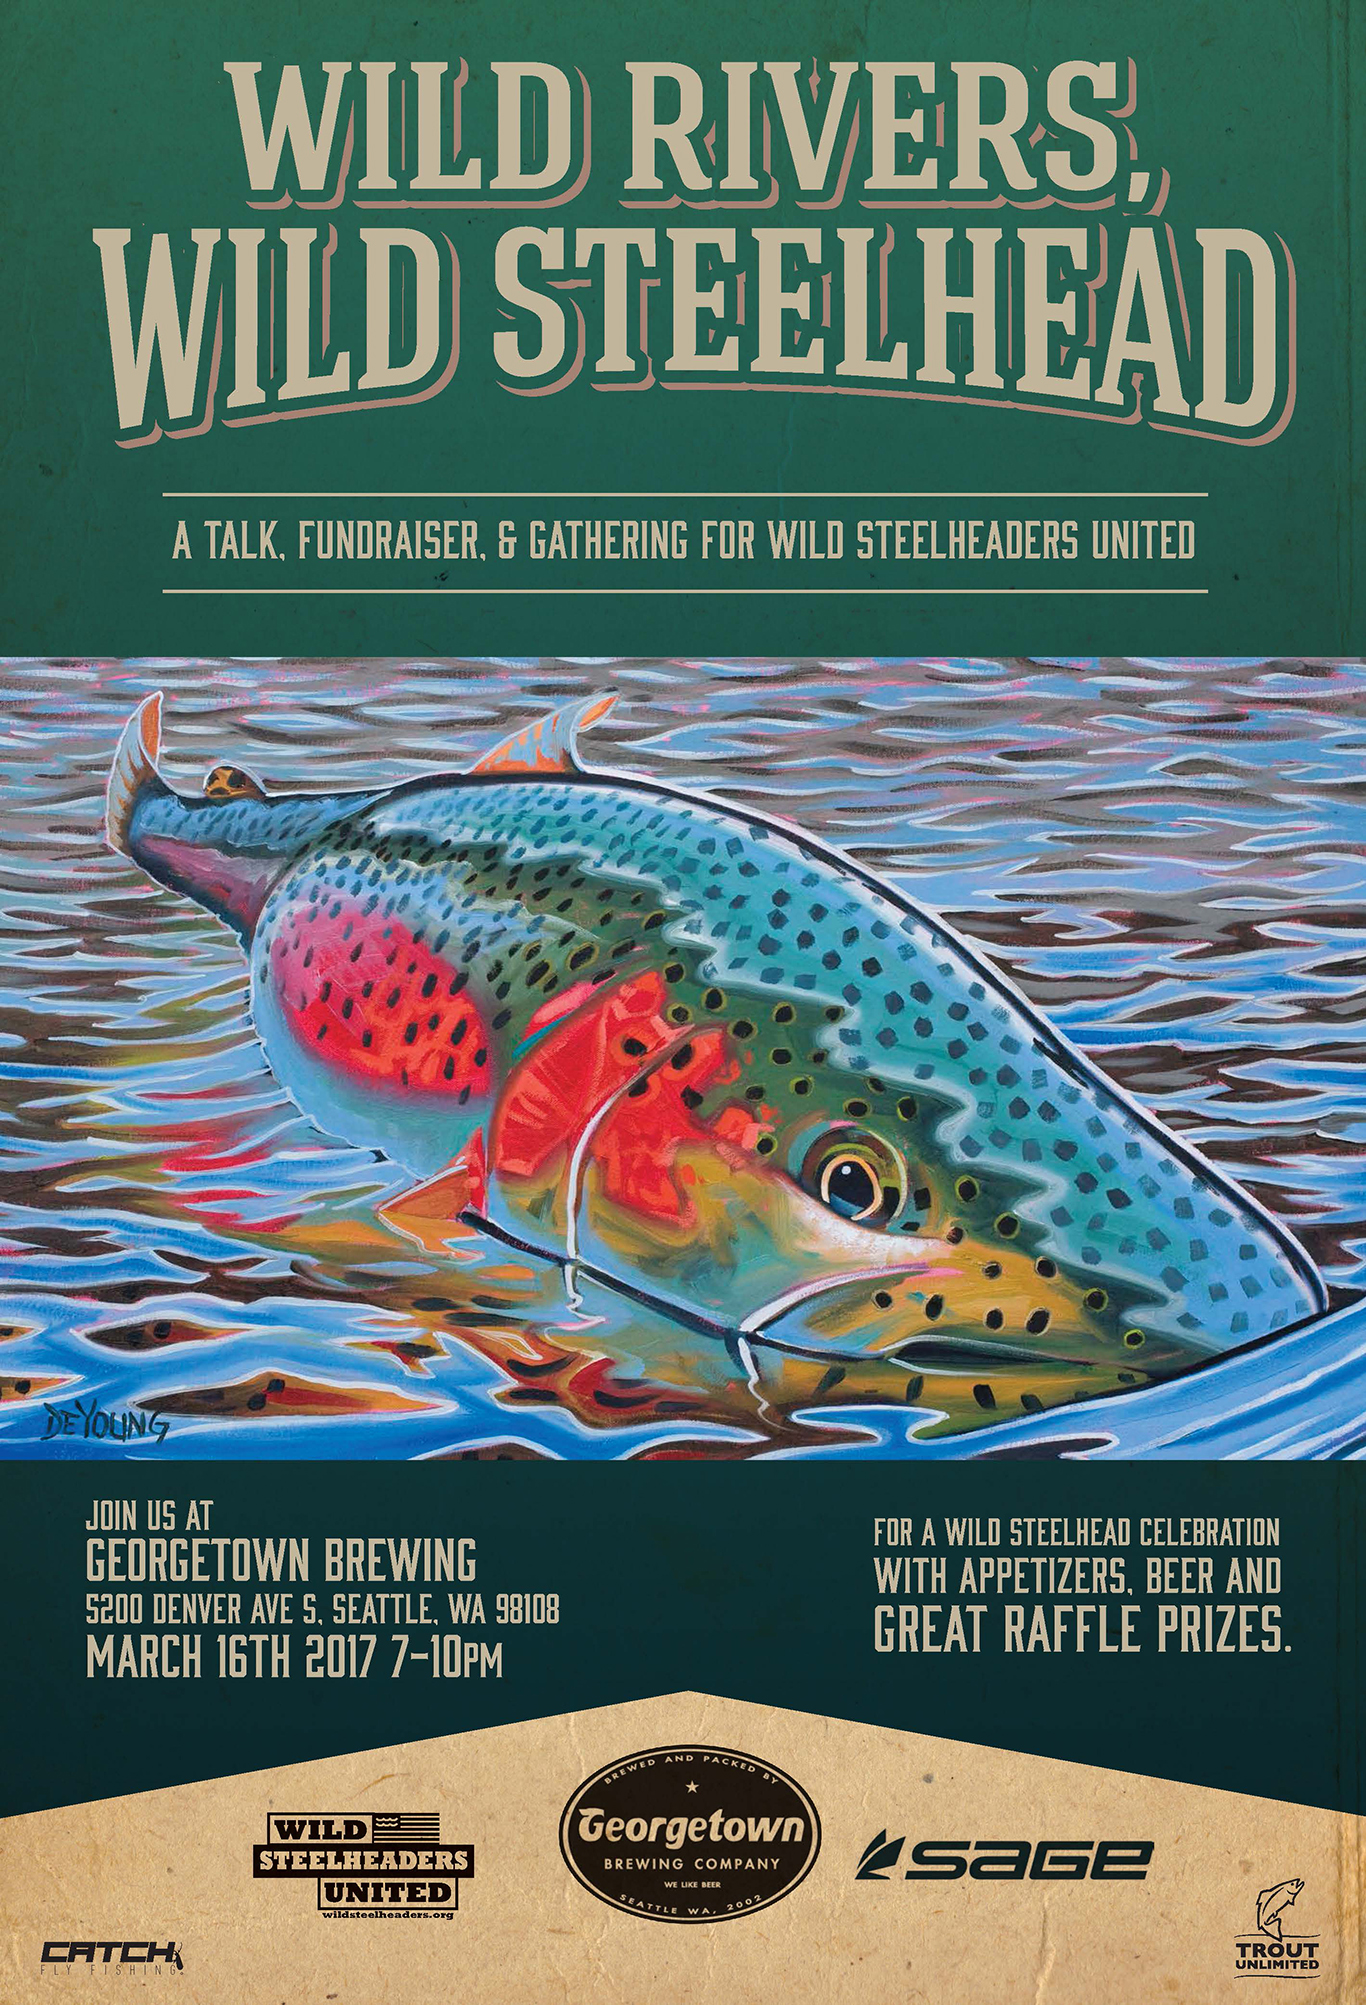 wild steelhead, flyfishing, conservation, wild steelheaders united